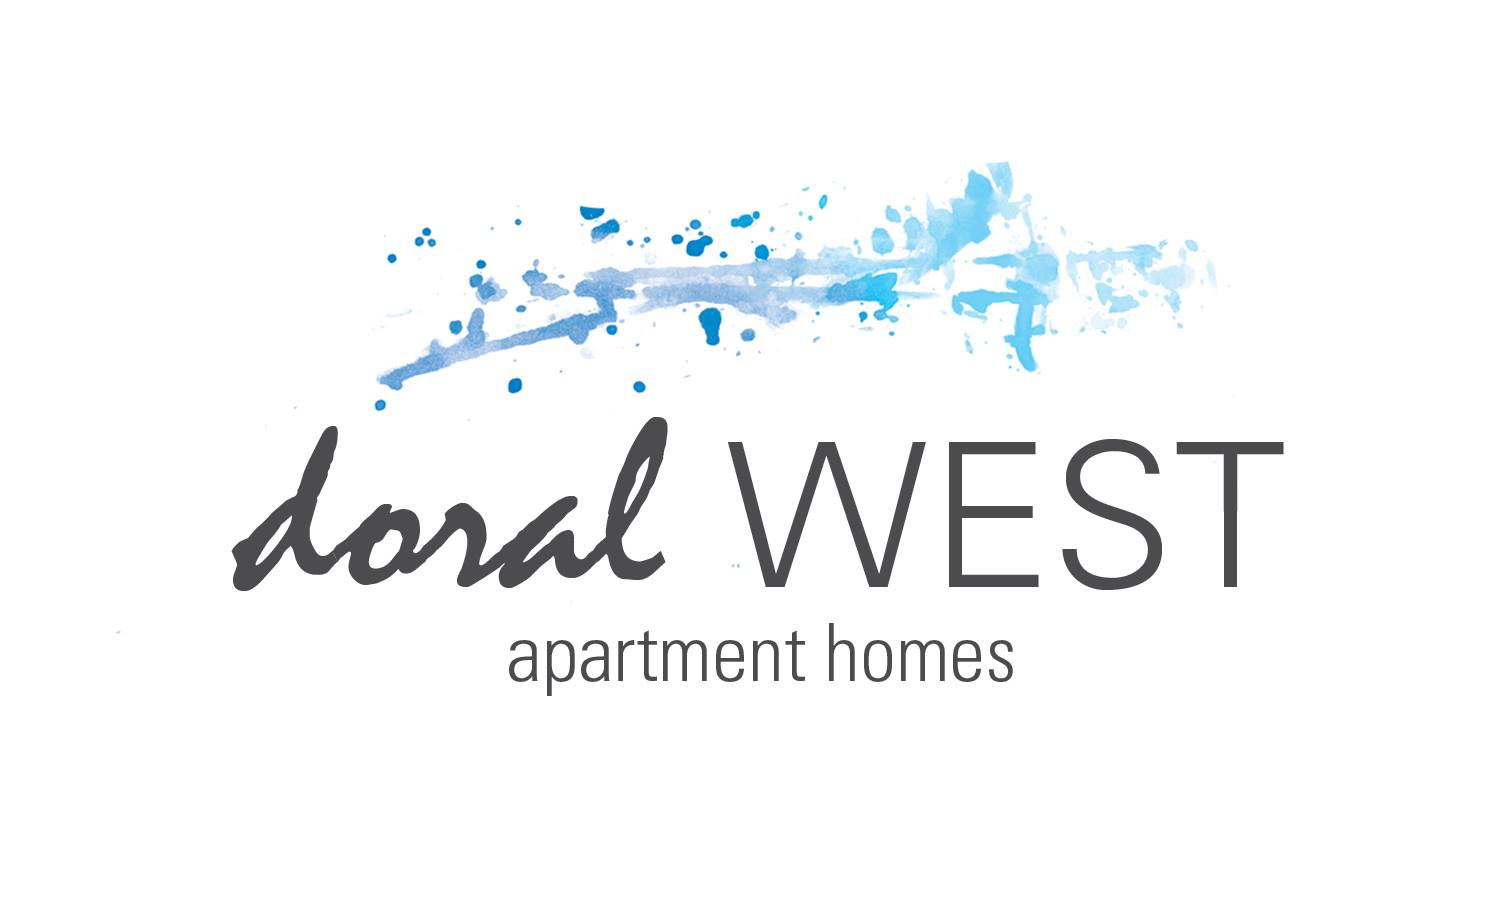 Doral West Apartment Homes, Doral Chamber of Commerce.